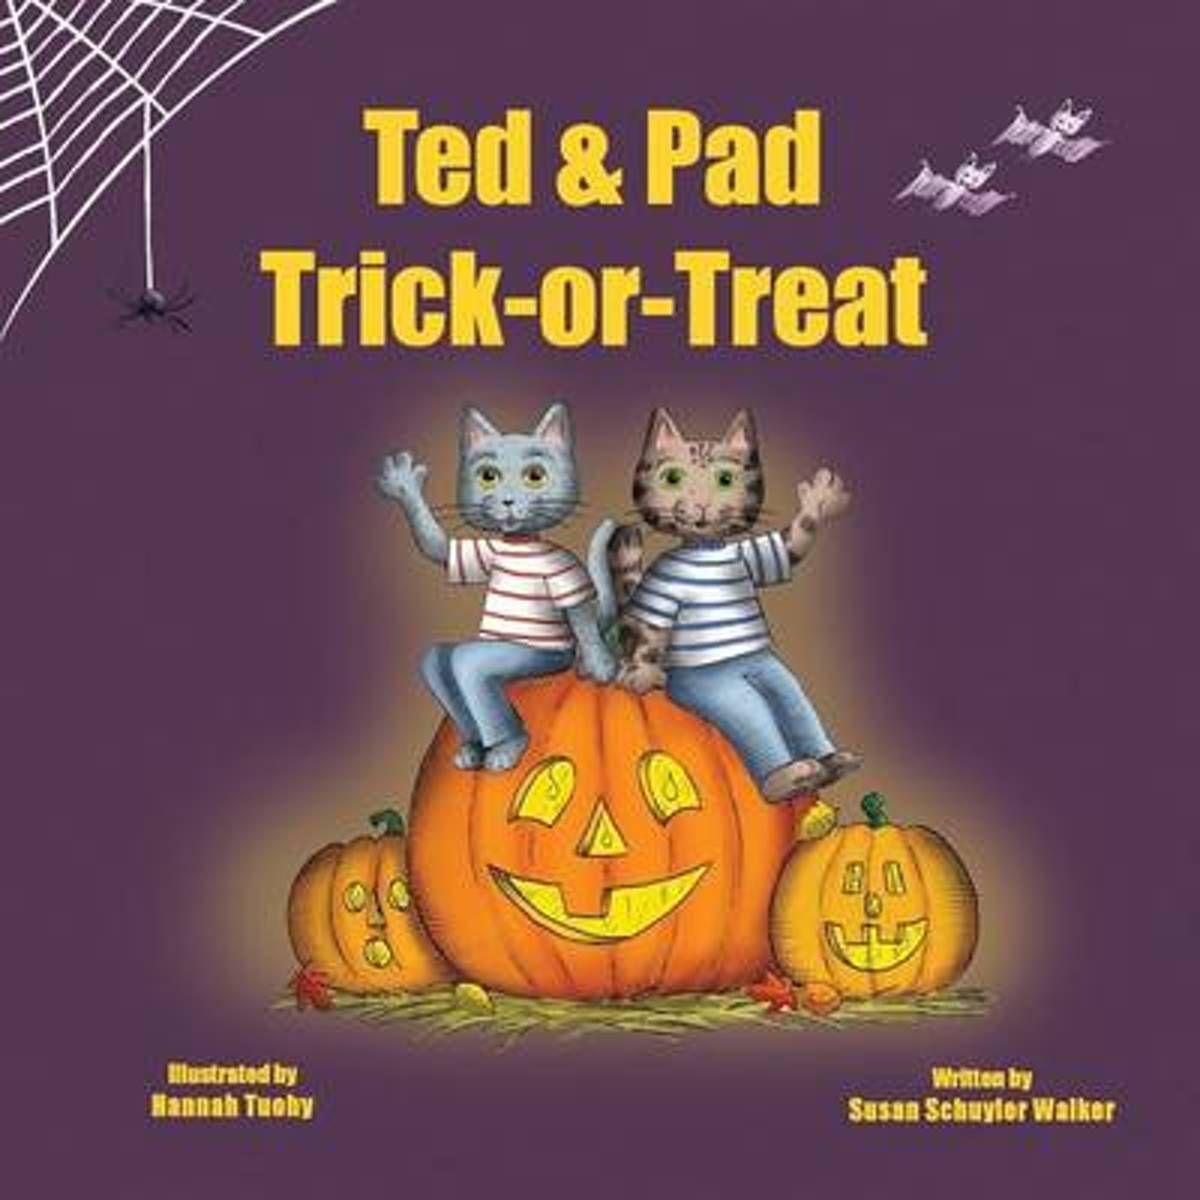 Ted & Pad Trick-Or-Treat